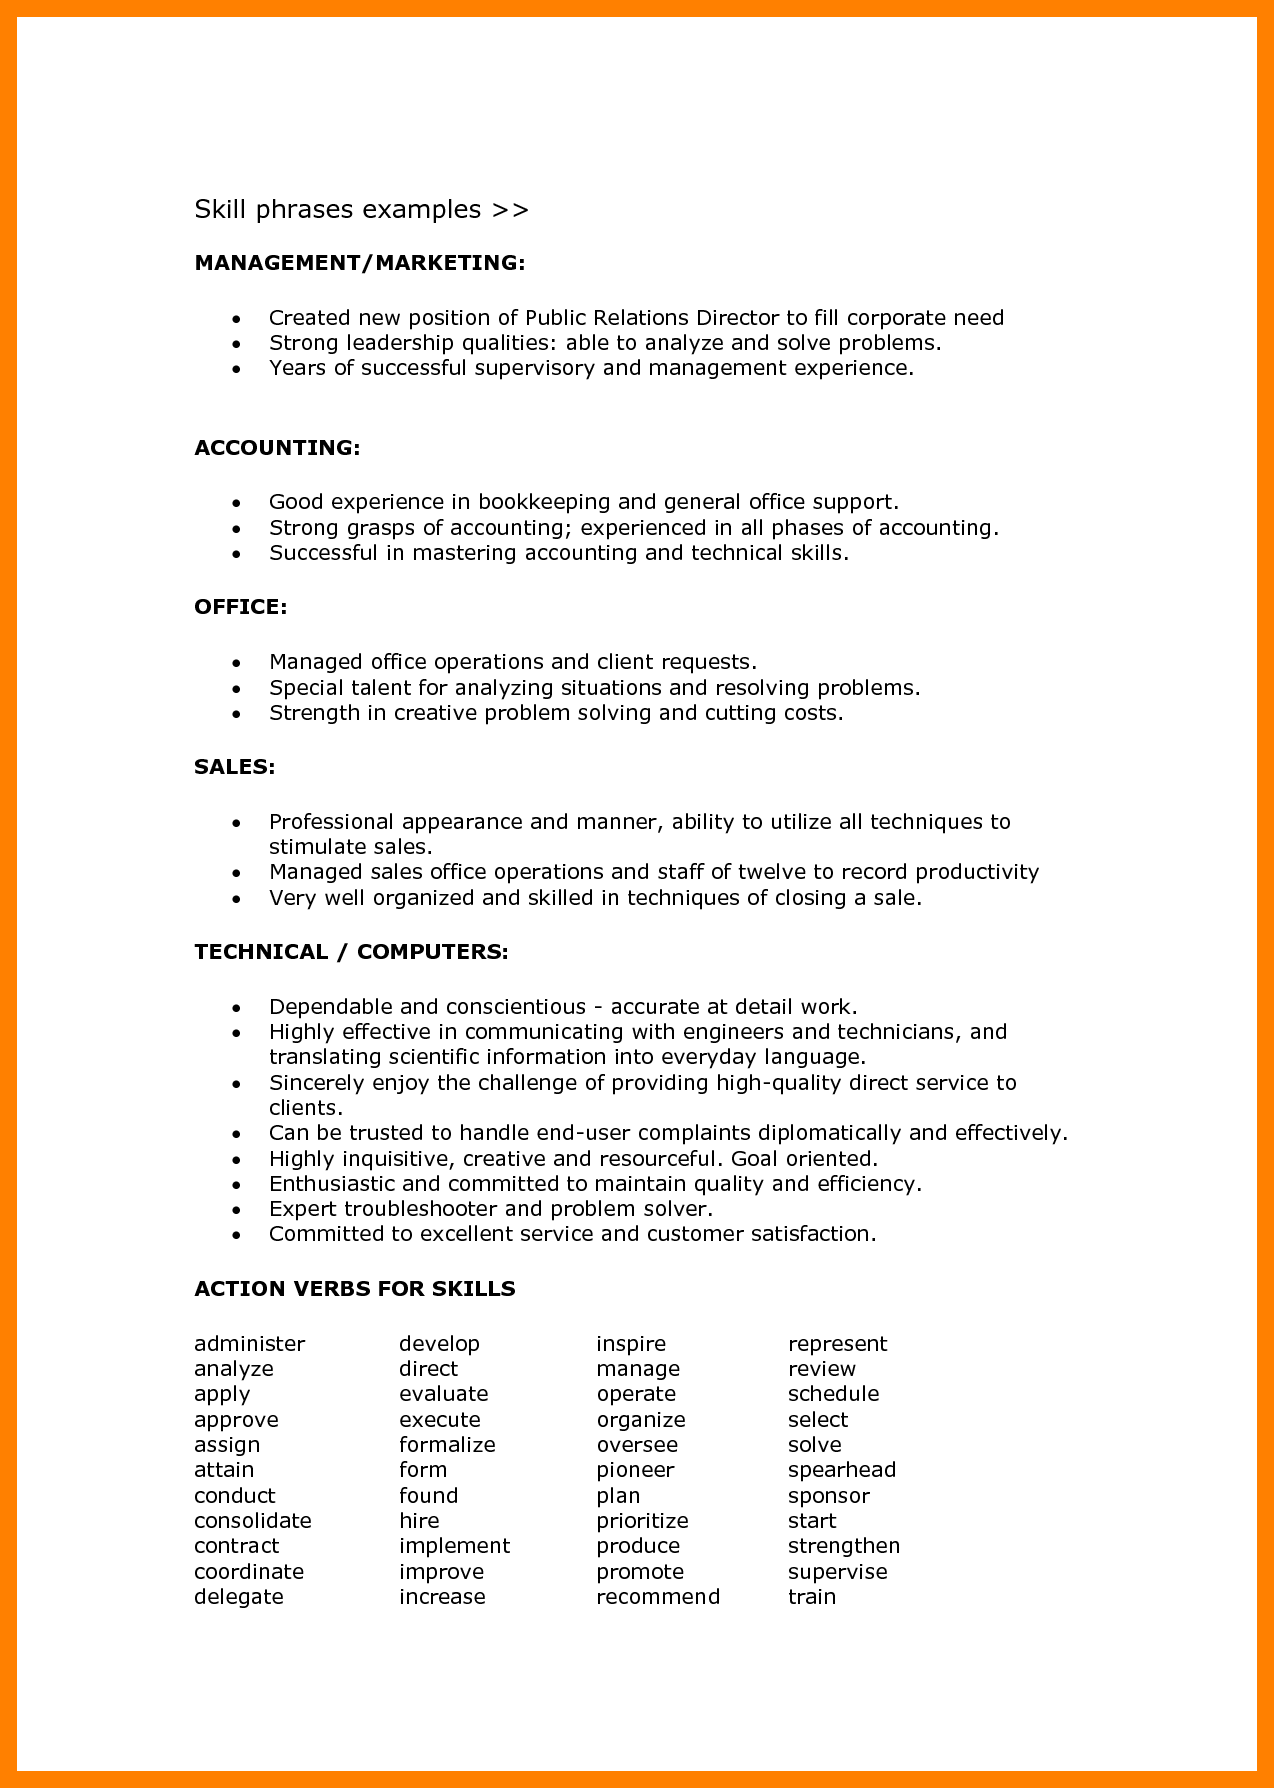 Problem Solving Resume Beauteous Resume Format Language Skills  Resume Format  Pinterest  Resume .